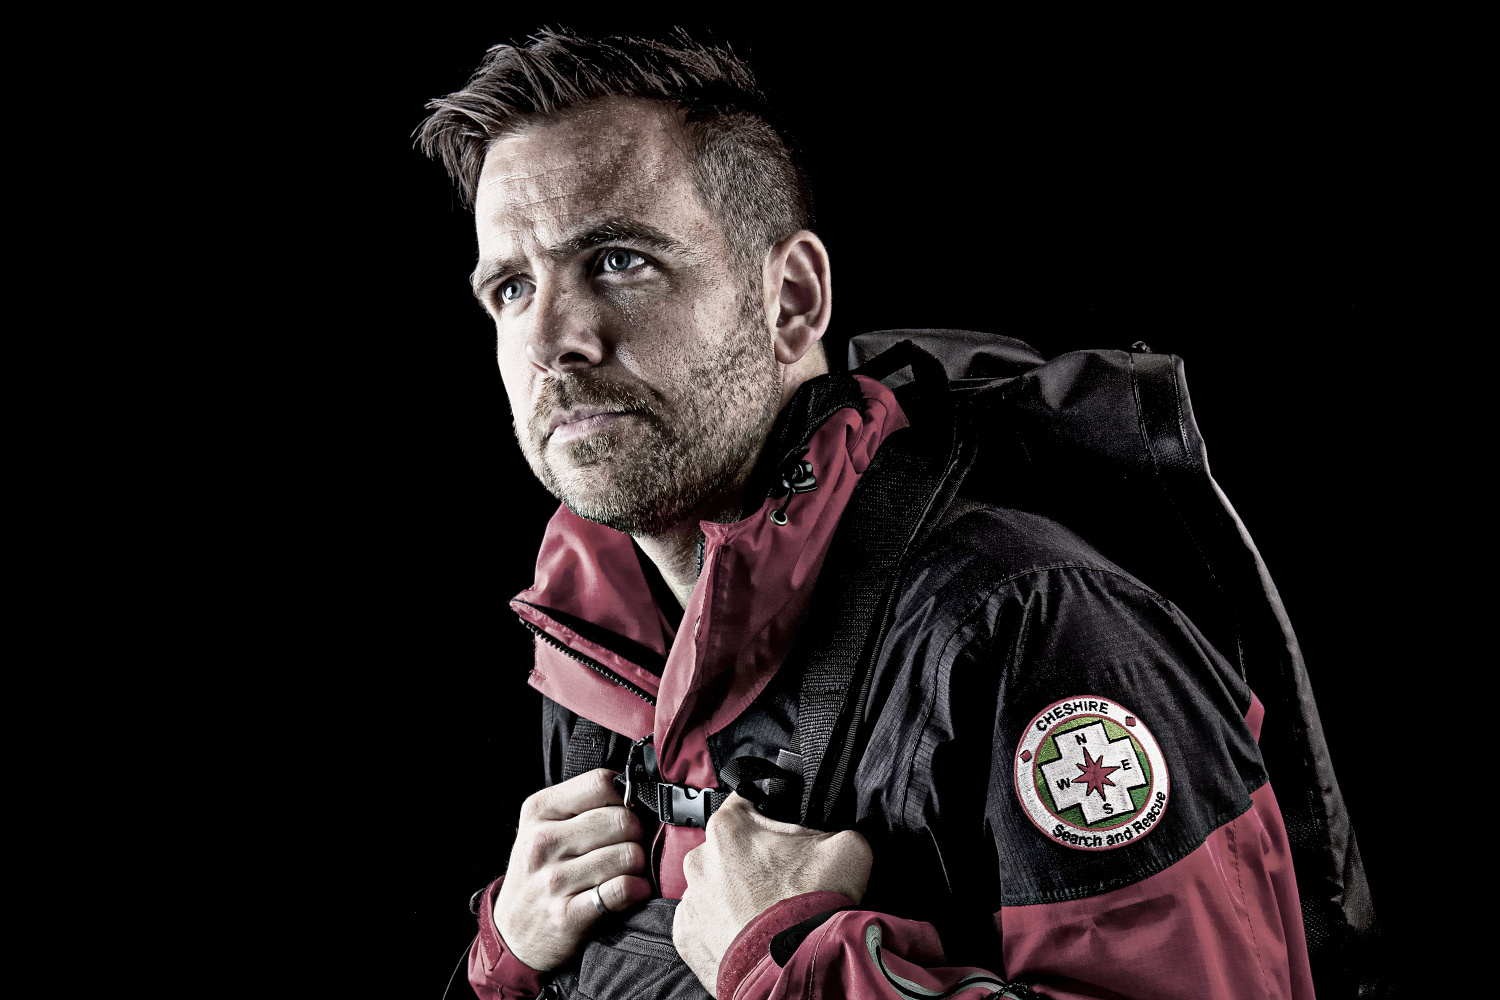 Commercial Portrait Photograph of man in Weather Proof Jacket and Back Pack from Cheshire Search and Rescue by Paul Worpole Photography